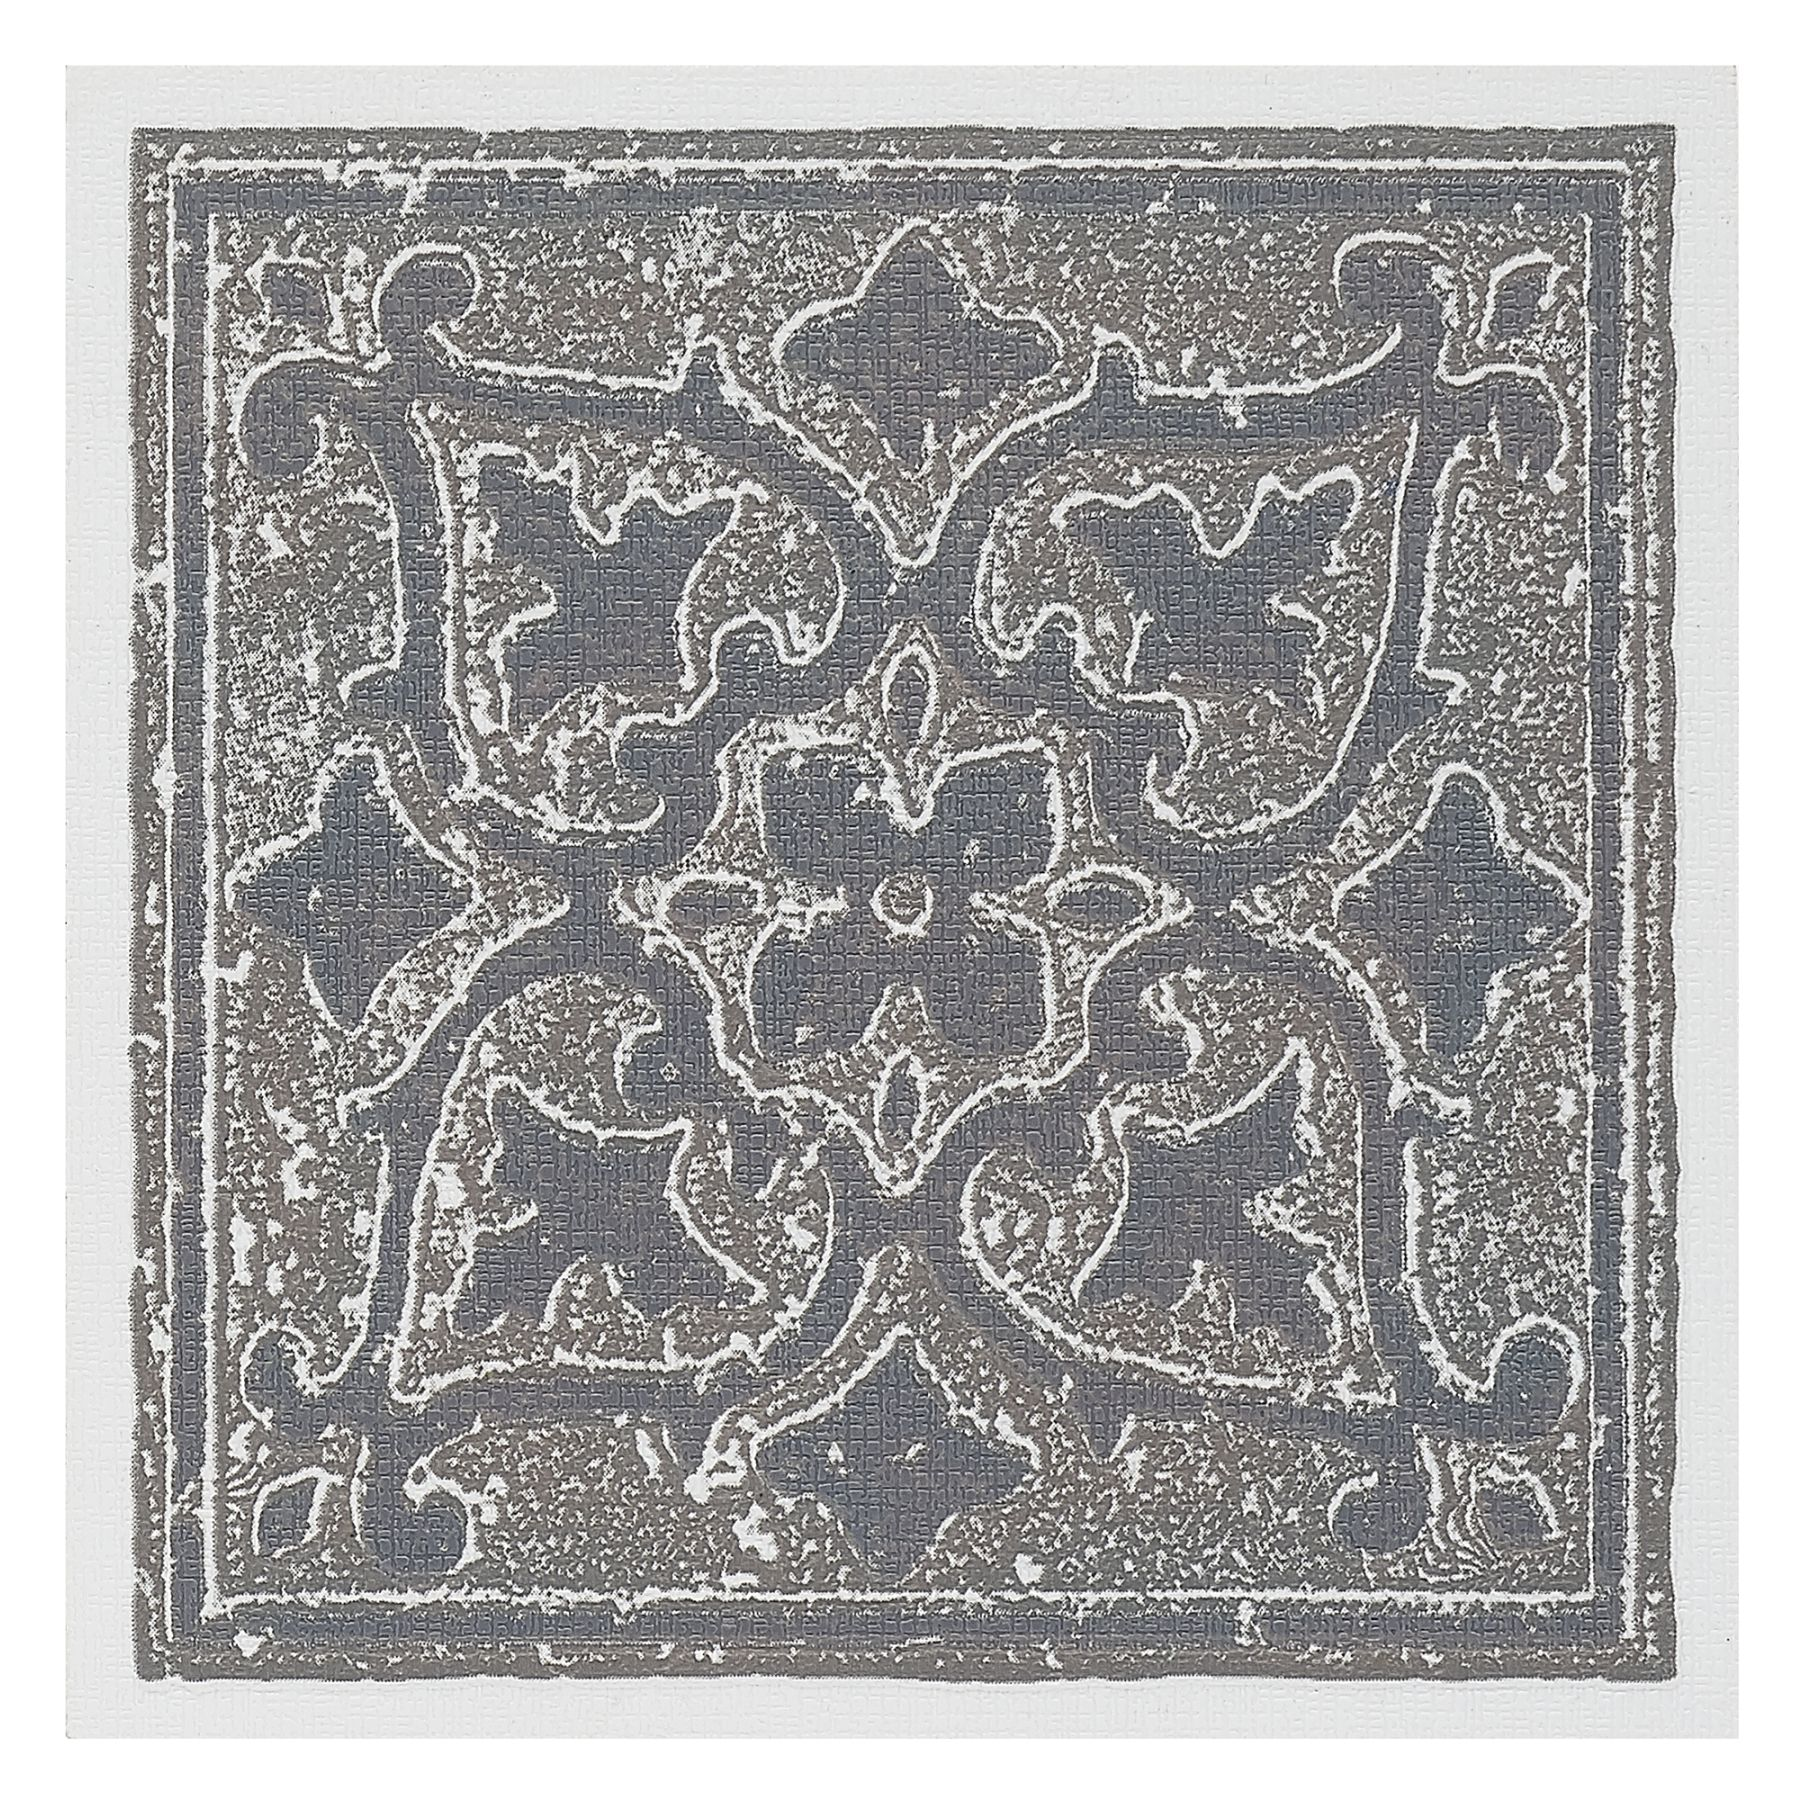 Traditional Elegance Madison Accent Gray 4x4 Self Adhesive Vinyl Wall Tile - 27 Tiles/3 sq. Ft.